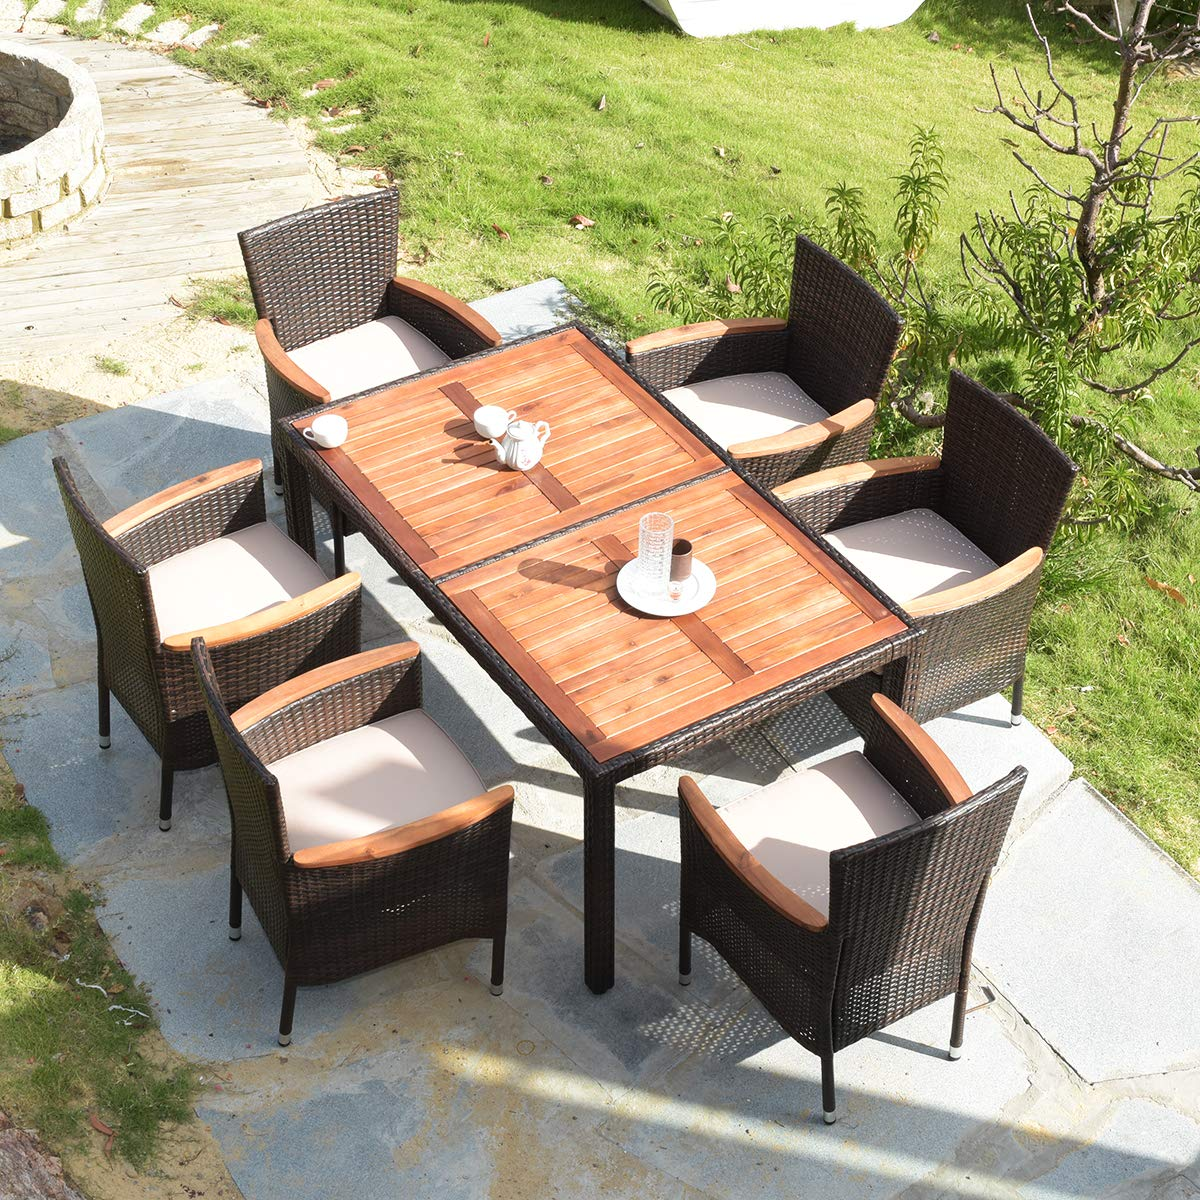 Tangkula 7 PCS Outdoor Patio Dining Set, Garden Dining Set w Acacia Wood Table Top, Stackable Chairs with Soft Cushion, Poly Wicker Dining Table and Chairs Set Brown